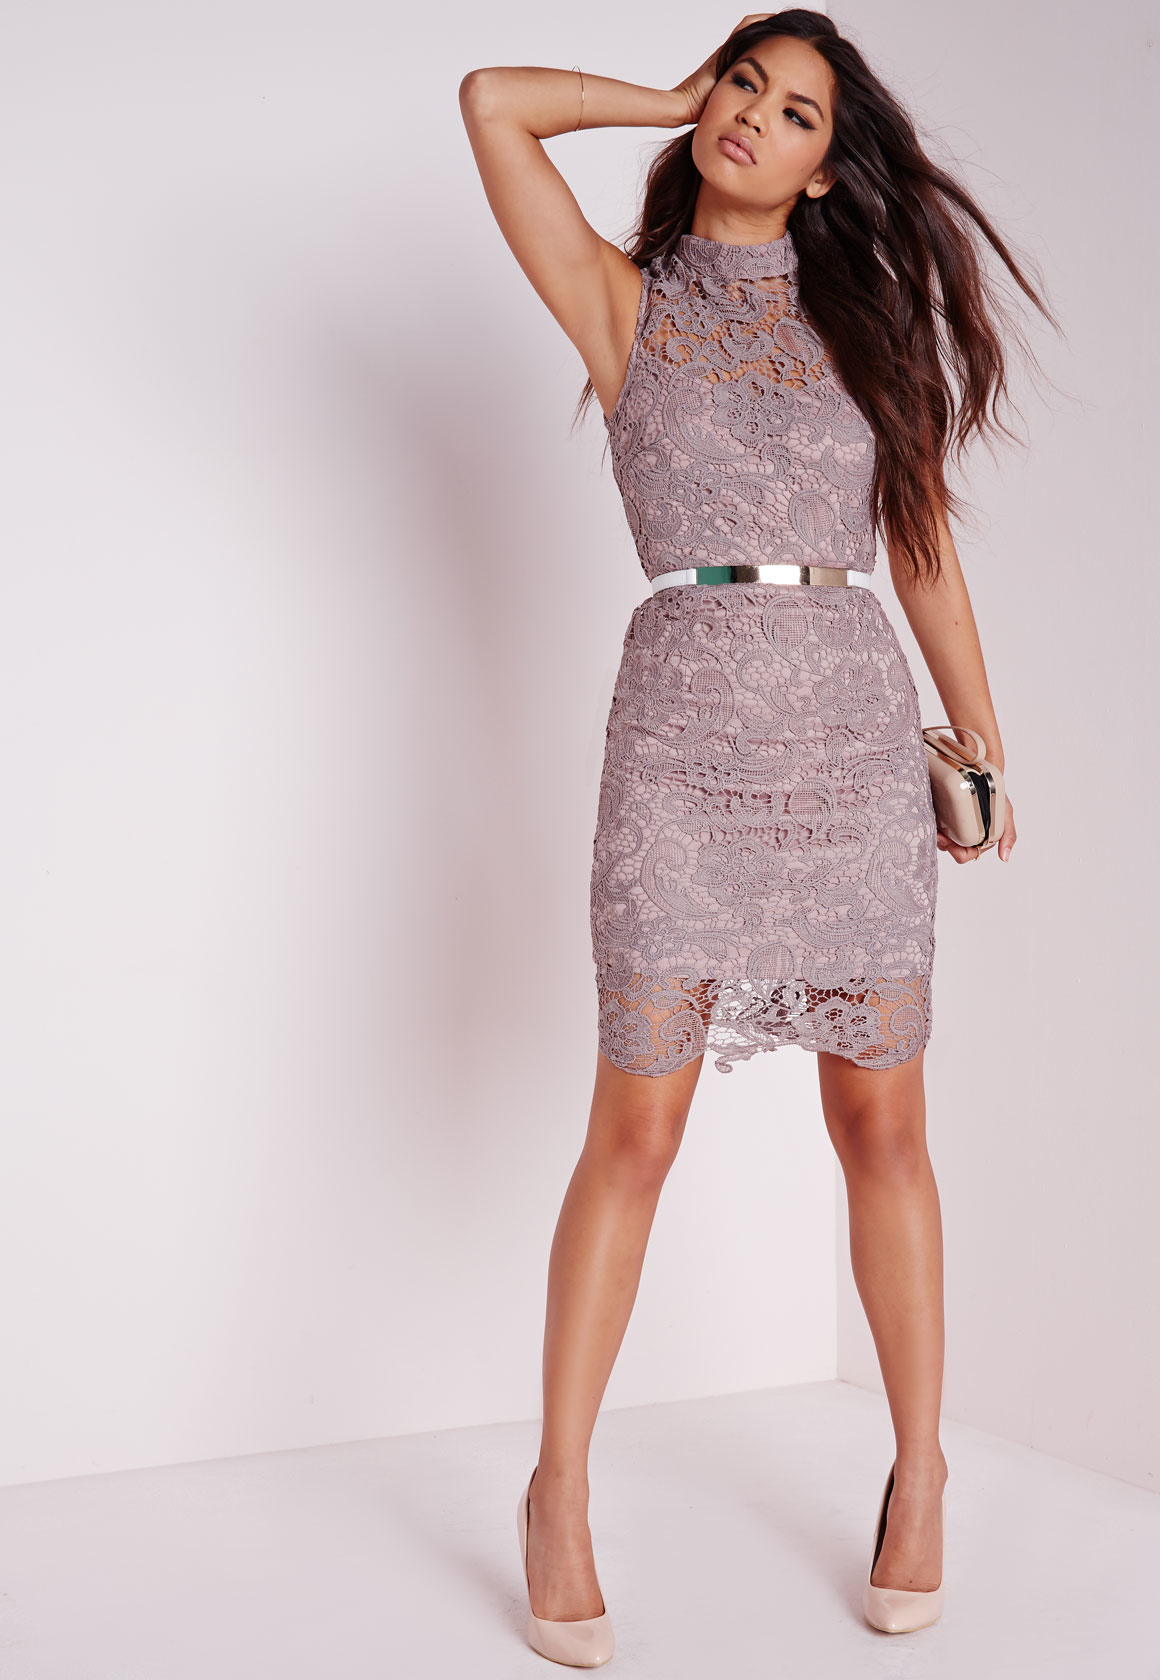 Lyst - Missguided Lace Sleeveless High Neck Bodycon Dress